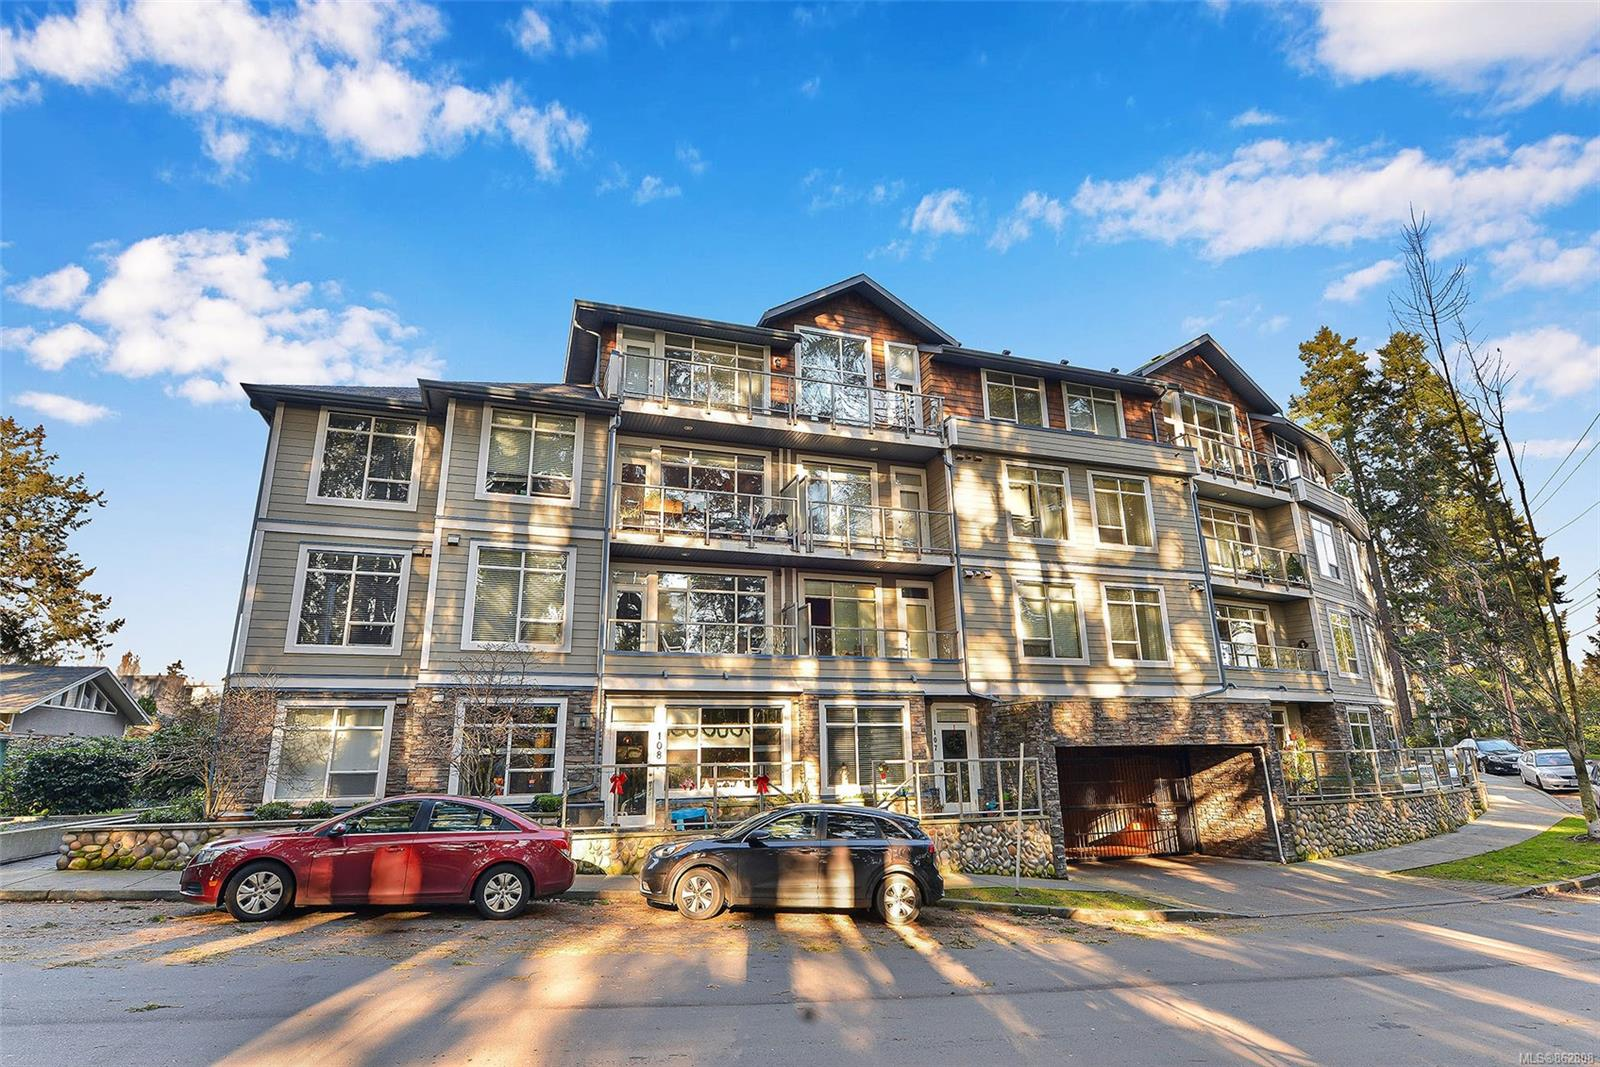 608 Fairway Ave # 305, Langford BC V9B 2R5